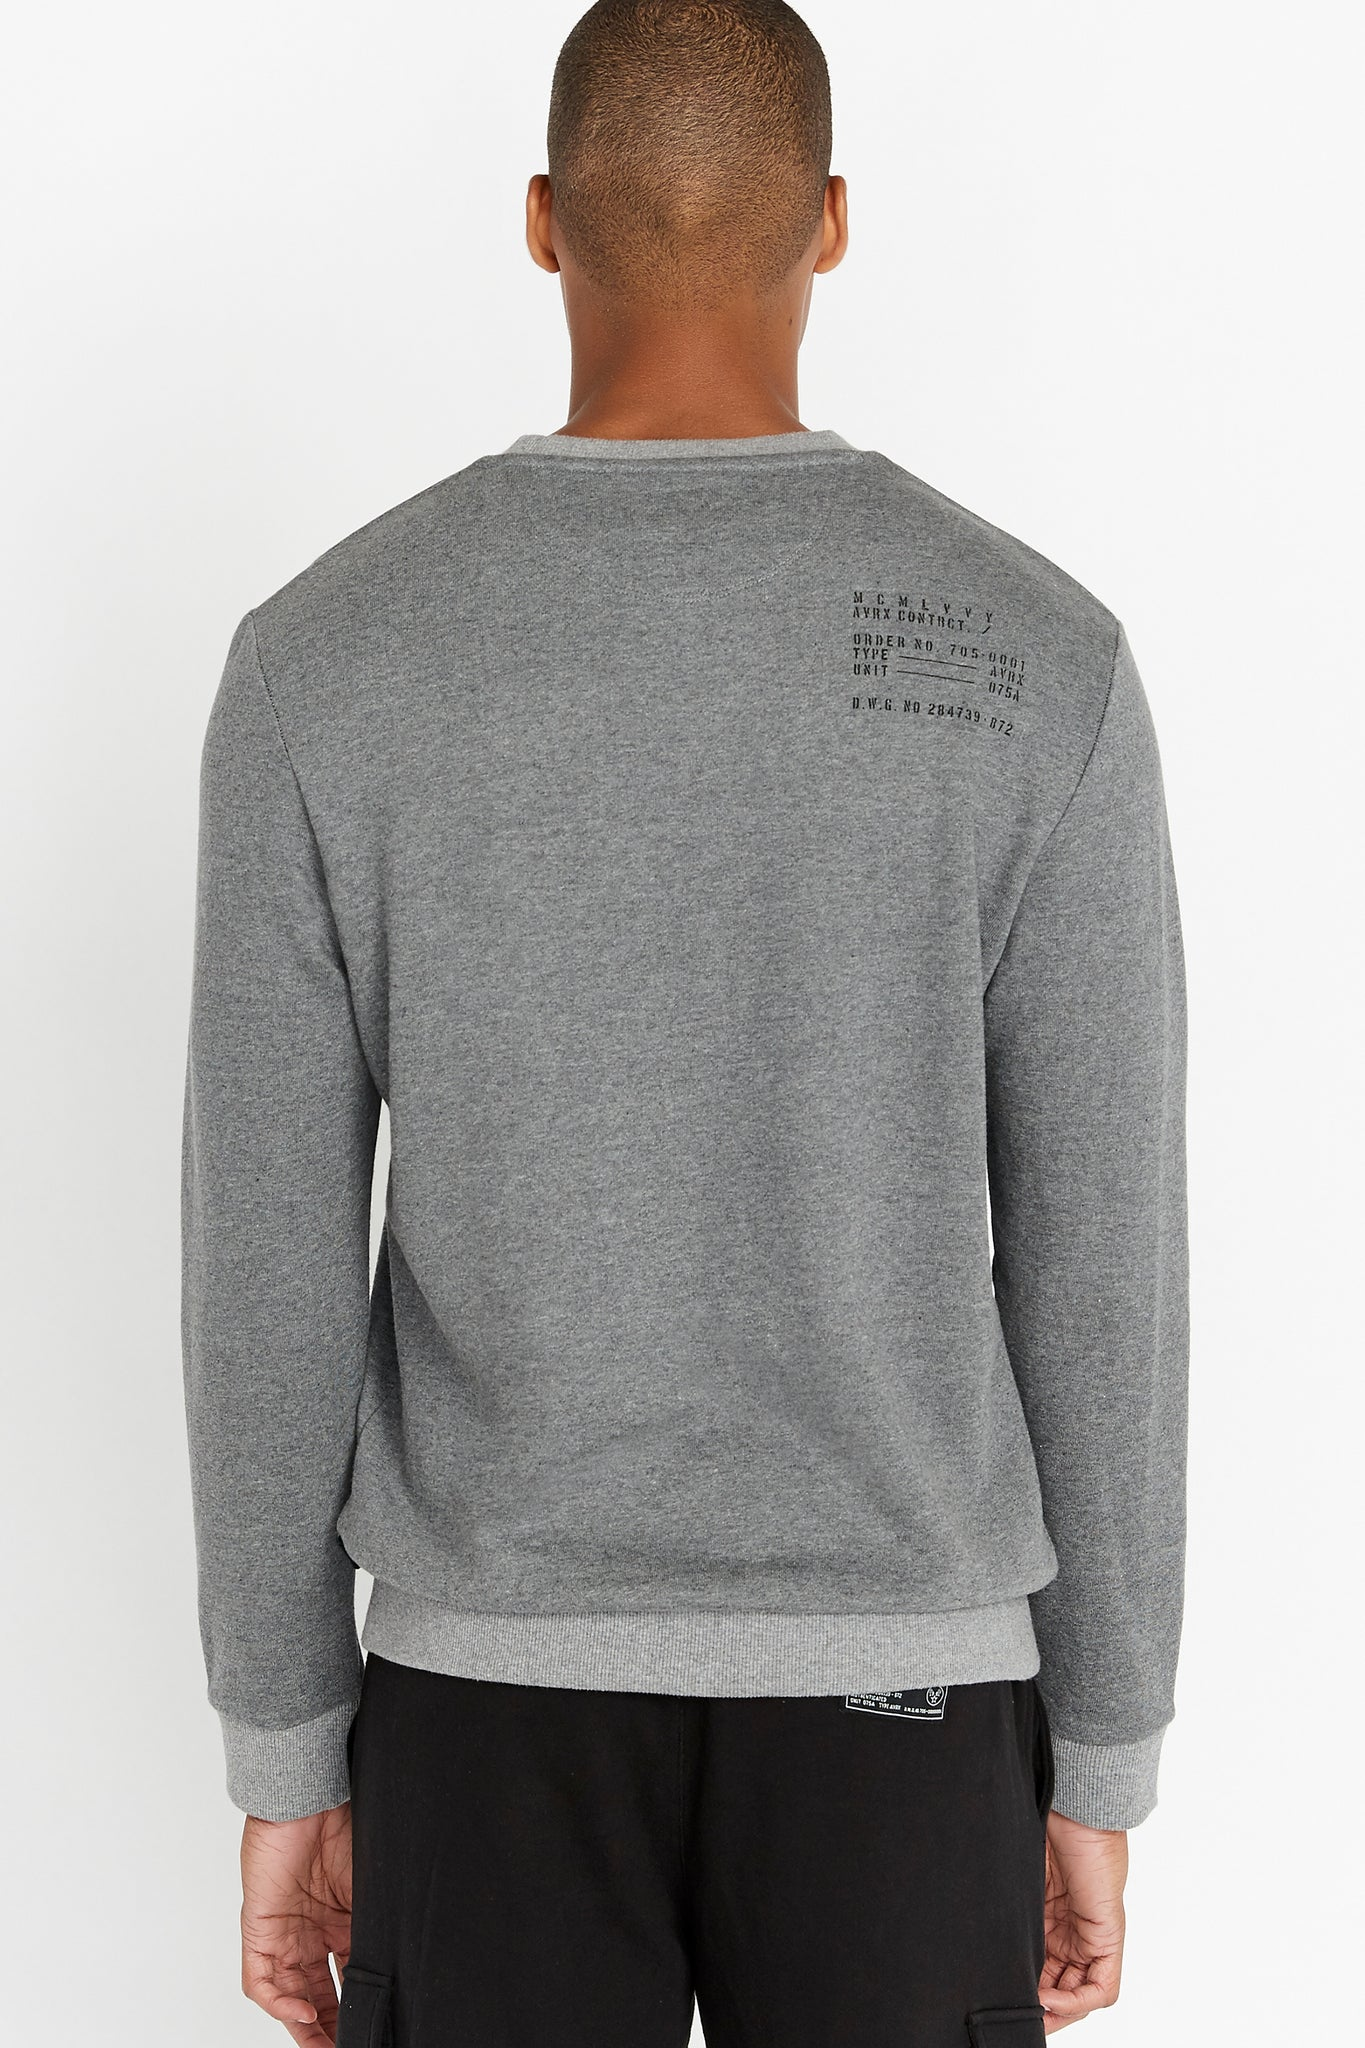 Back view of men wearing a grey long sleeve crew neck sweater with utility print on back shoulder